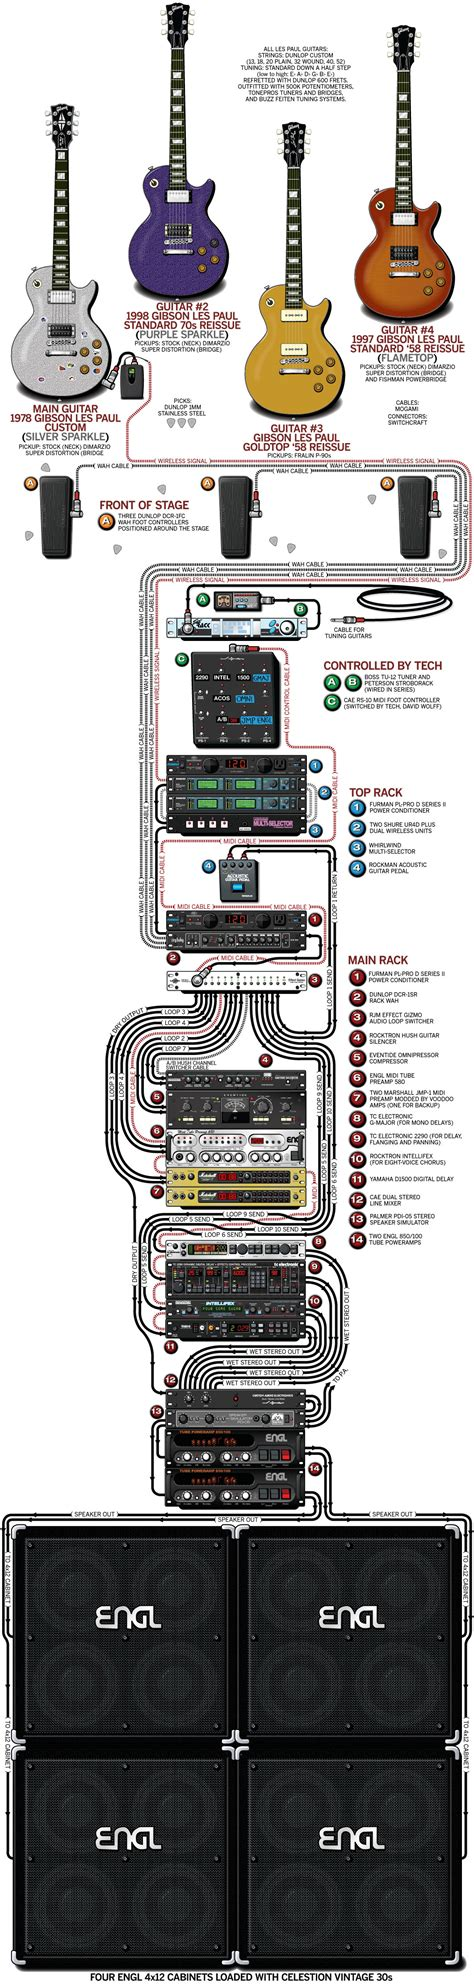 New Vivan Cable Set Pro Sse305 guitar rigs archives guitareuromedia